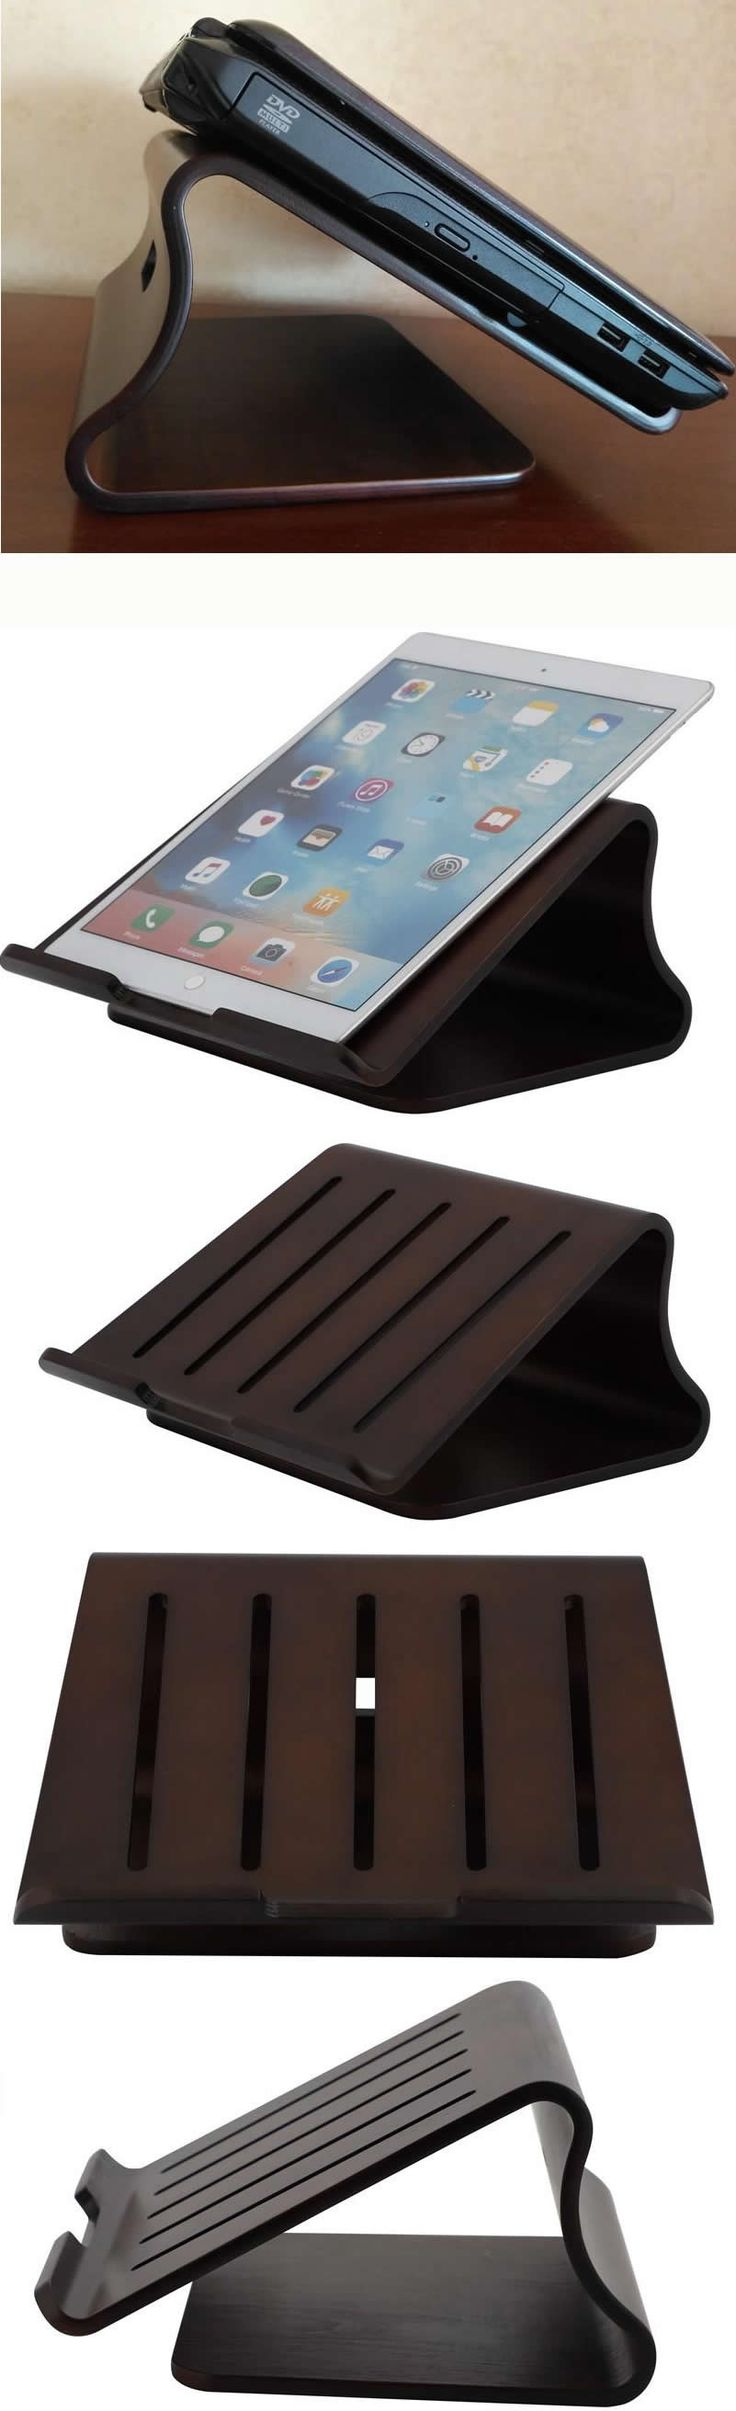 The Bamboo Wooden Cooling Stand Riser Dock Laptop Desk Desktop Stand Holder Mount Cradle for Laptop Notebook Tablets iPad Macbook Air or Pro is a great gift idea for those who spent endless hours in front of their laptop